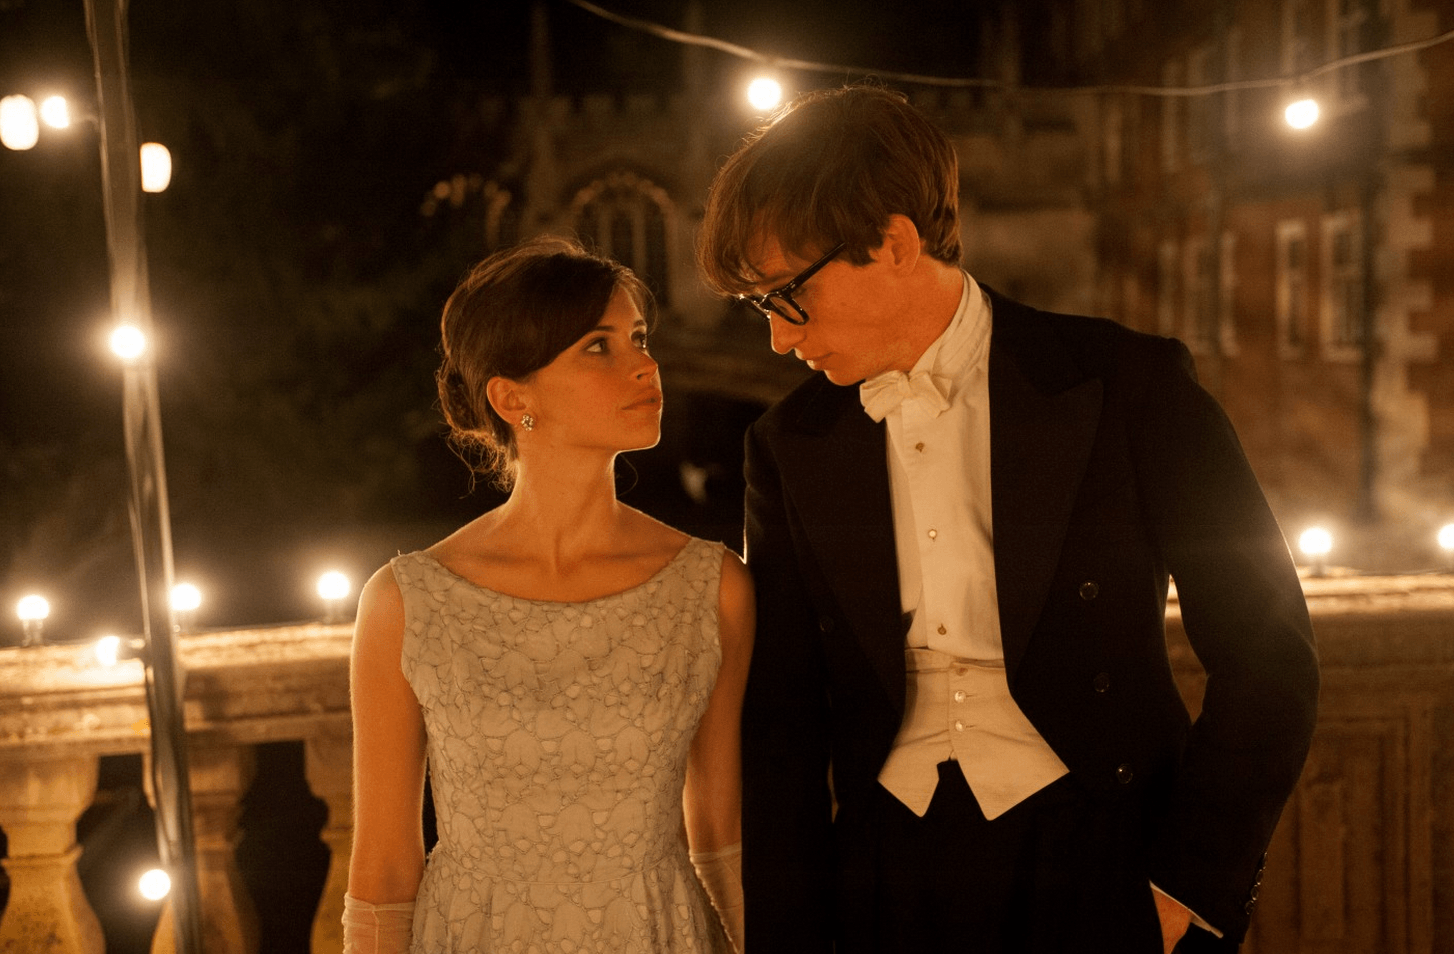 Eddie Redmayne as Stephen Hawking in The Theory of Everything